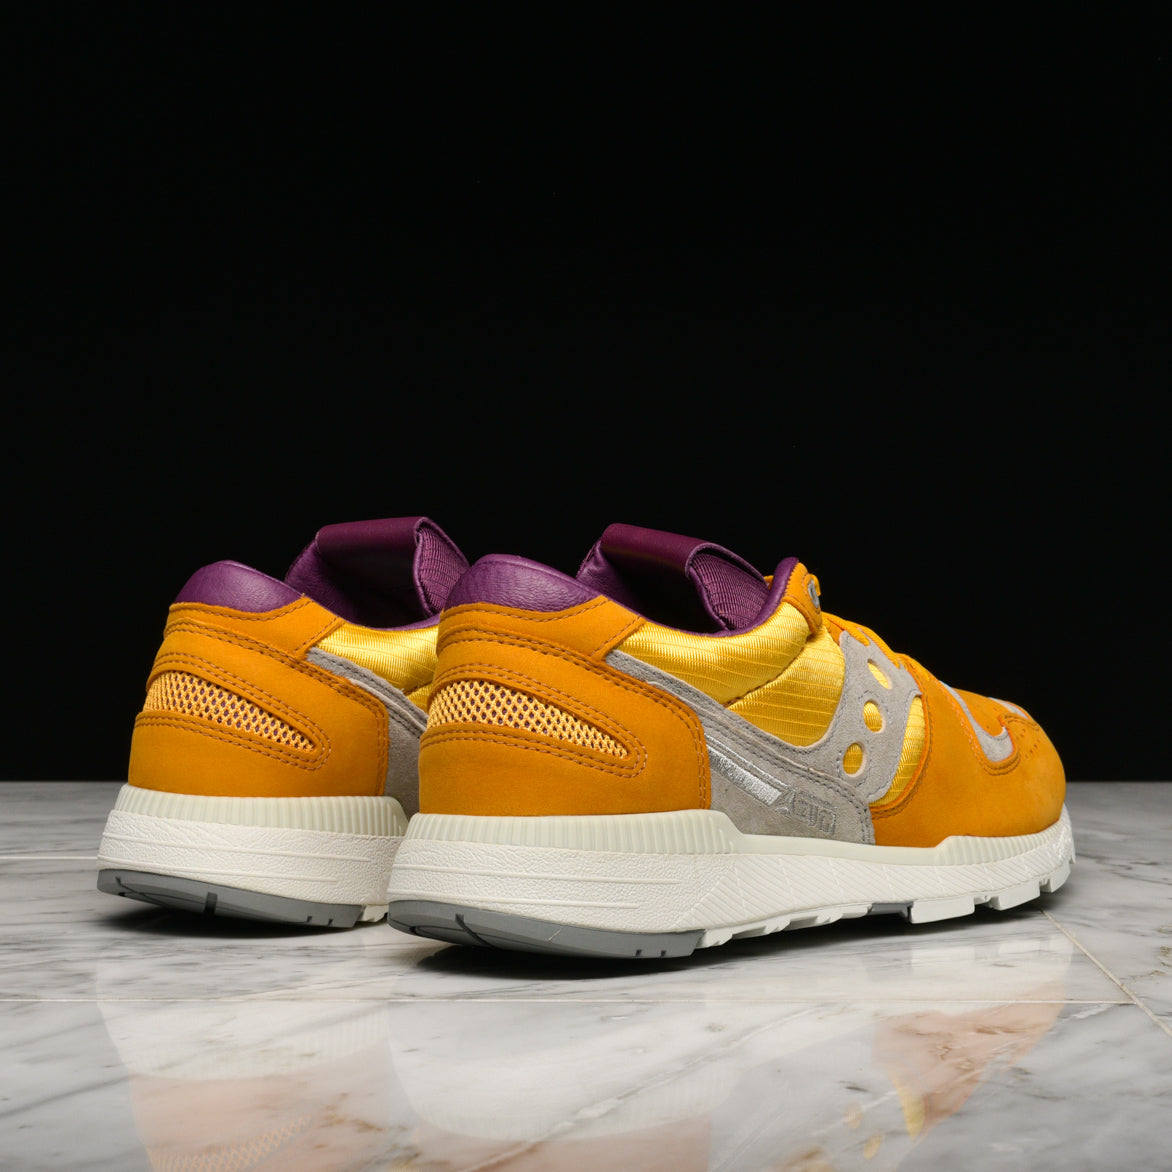 AZURA WEATHERED LUXURY - YELLOW / PURPLE